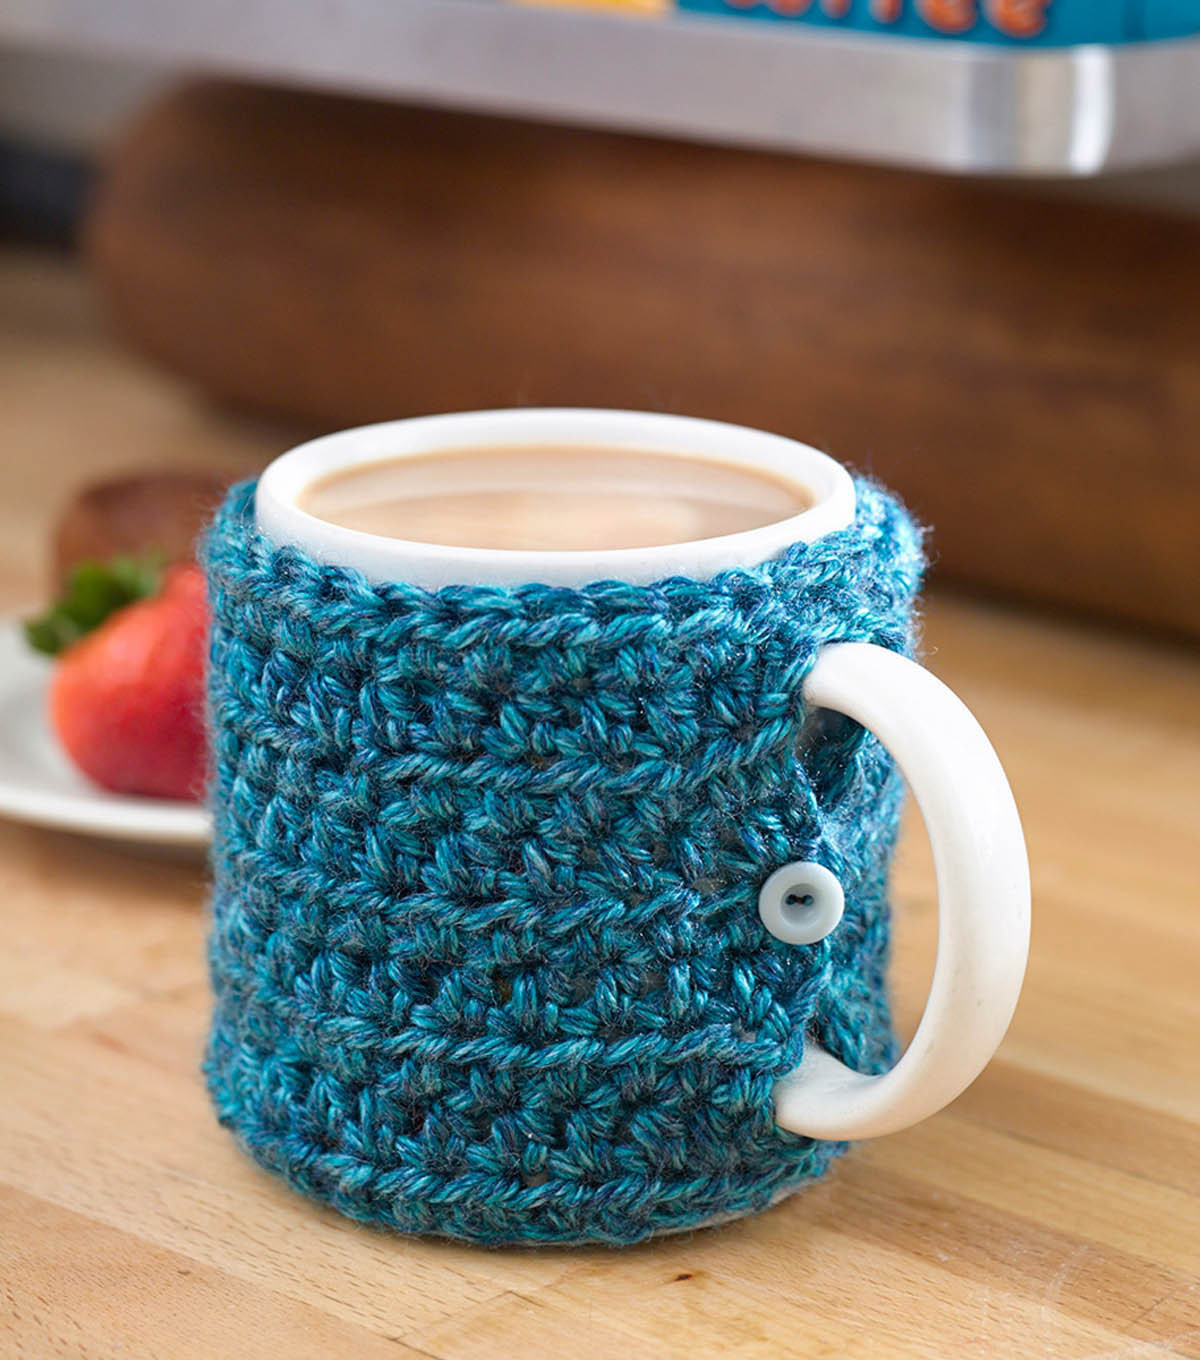 Crochet Coffee Cup Cozy Best Of Craftdrawer Crafts Free Easy to Crochet Mug Cozy Patterns Of Crochet Coffee Cup Cozy Awesome Crochet Coffee Cozy Amy Latta Creations